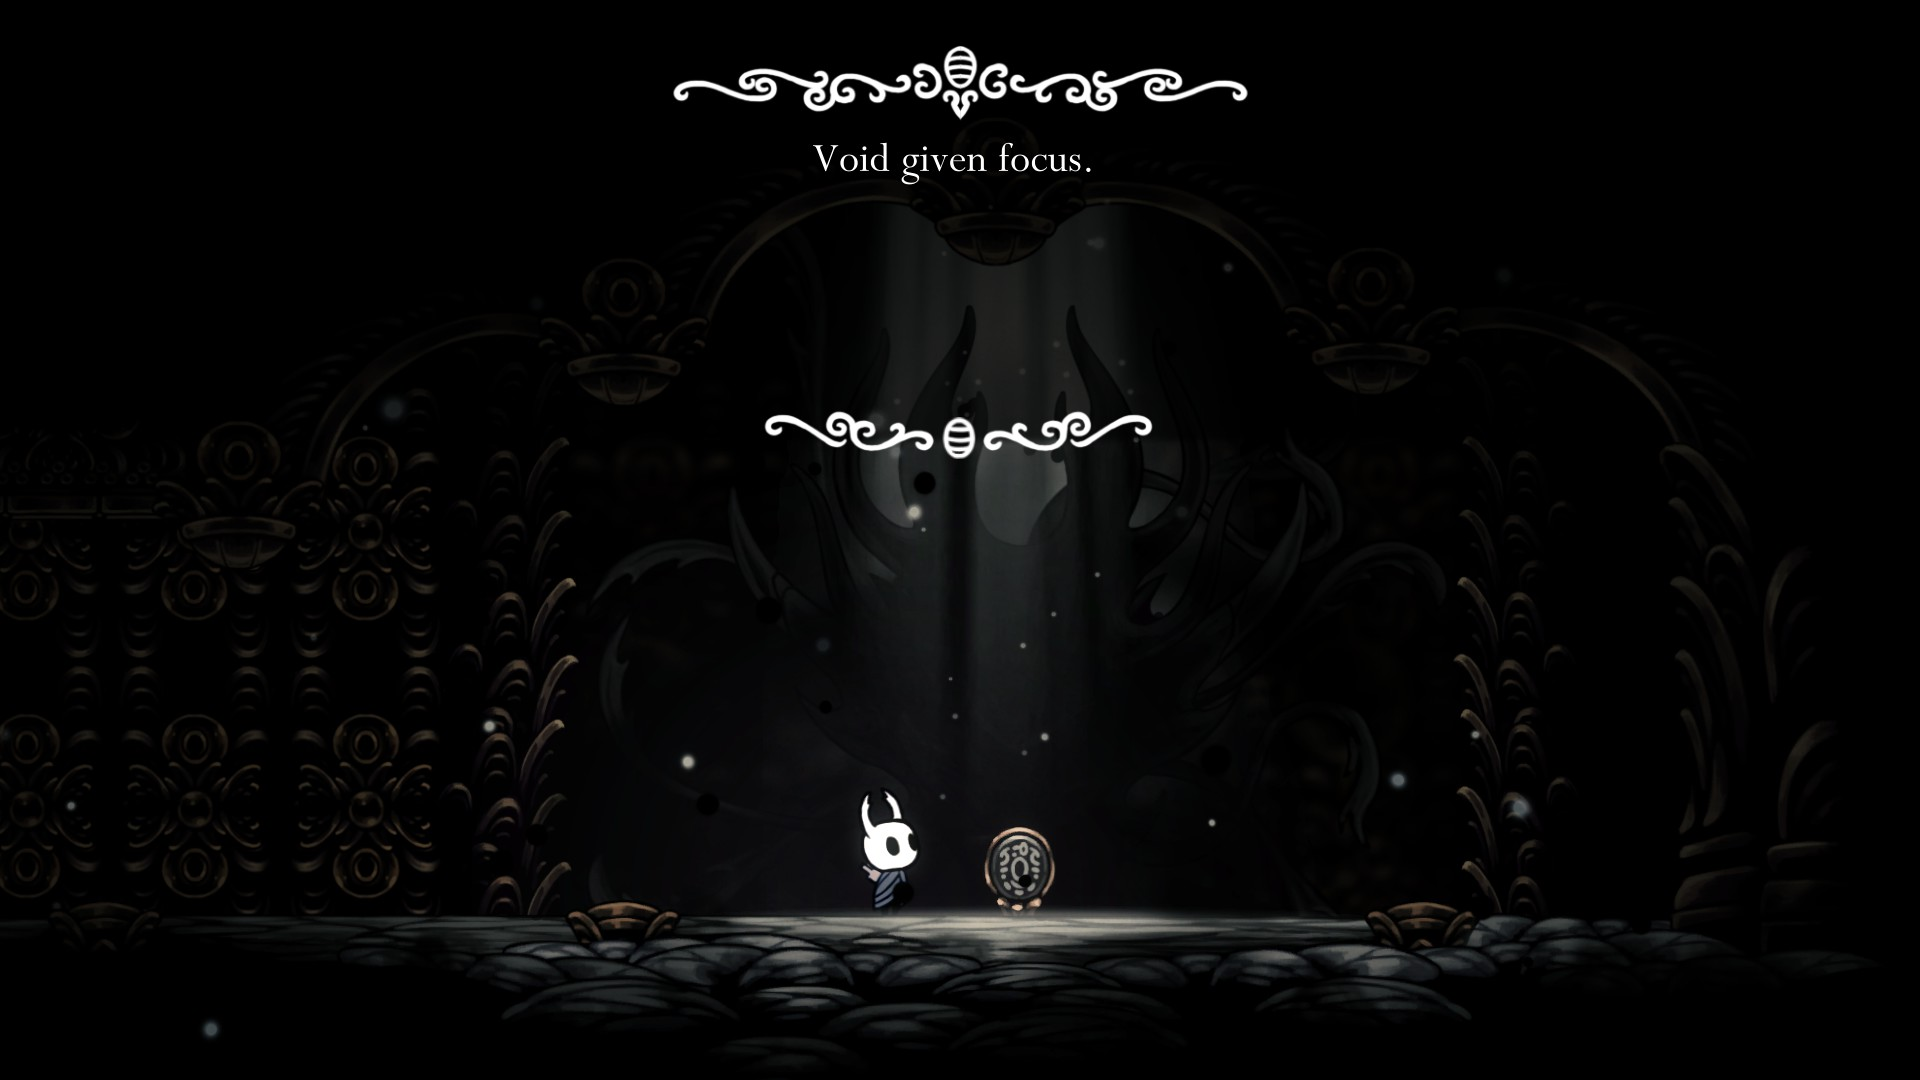 Steam Community Screenshot Void Given Focus You can also upload and share your favorite hollow knight wallpapers.